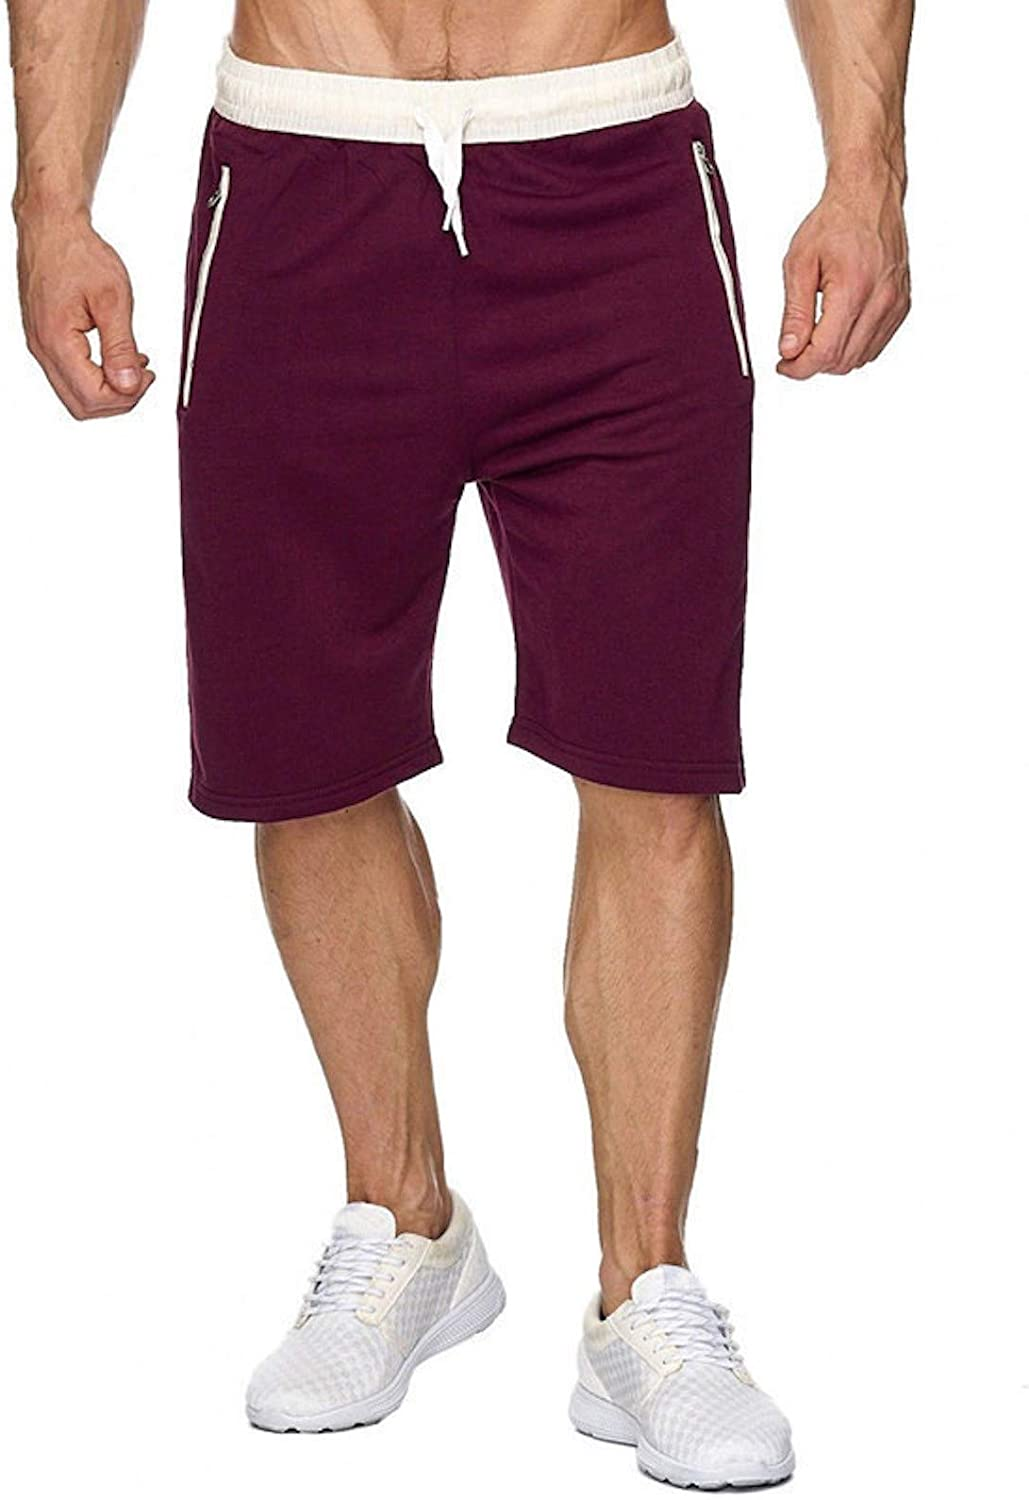 WSLCN Men Workout Gym Running Shorts Training with Inner Compression Quick Dry